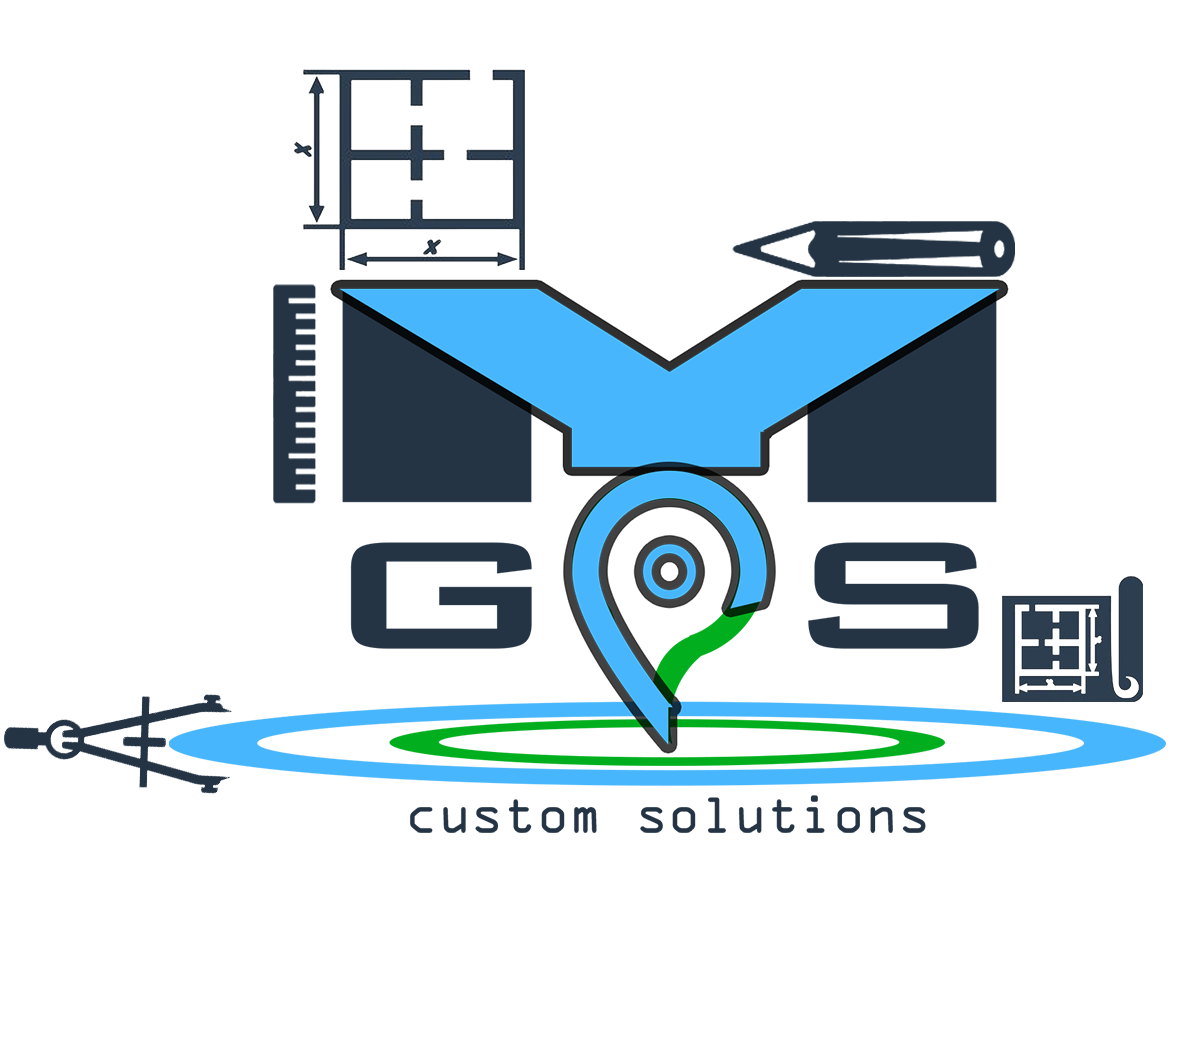 custom-gps-solutions-paragraph-image